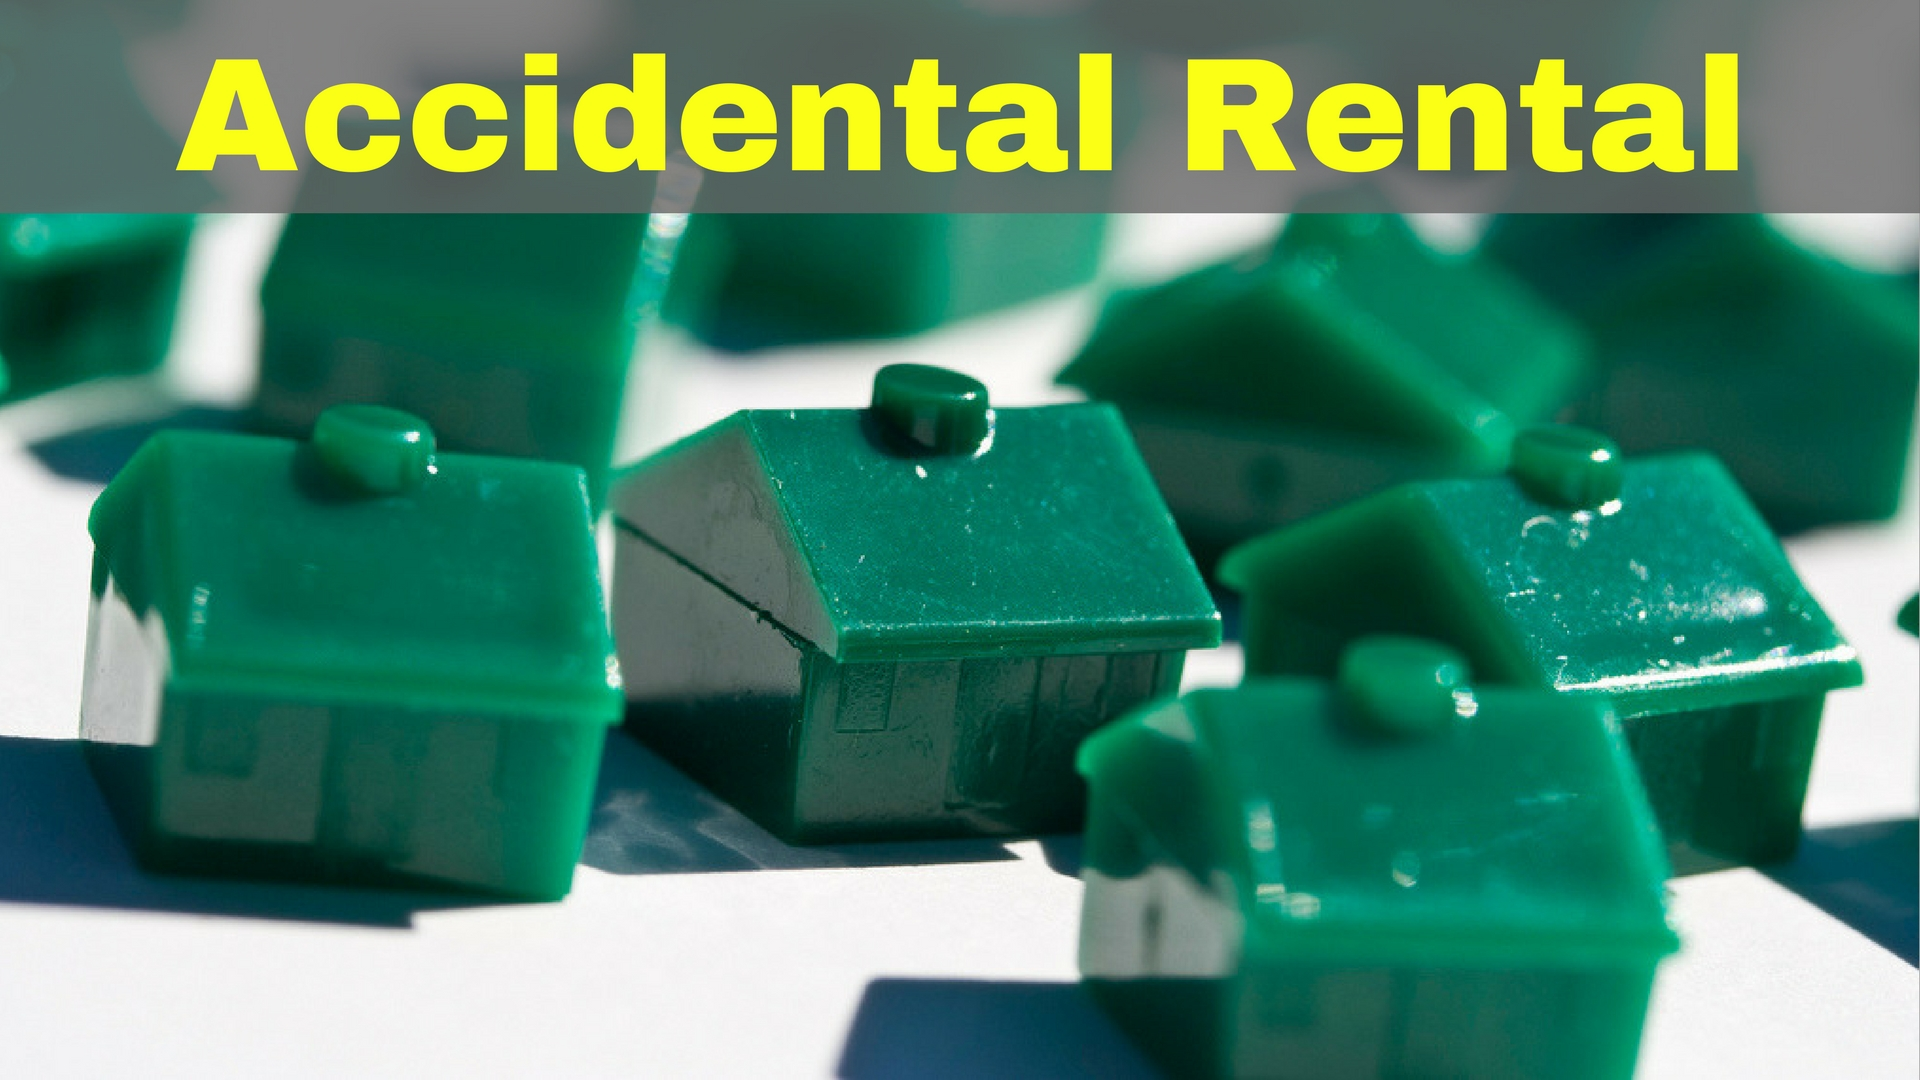 AccidentalRental.com